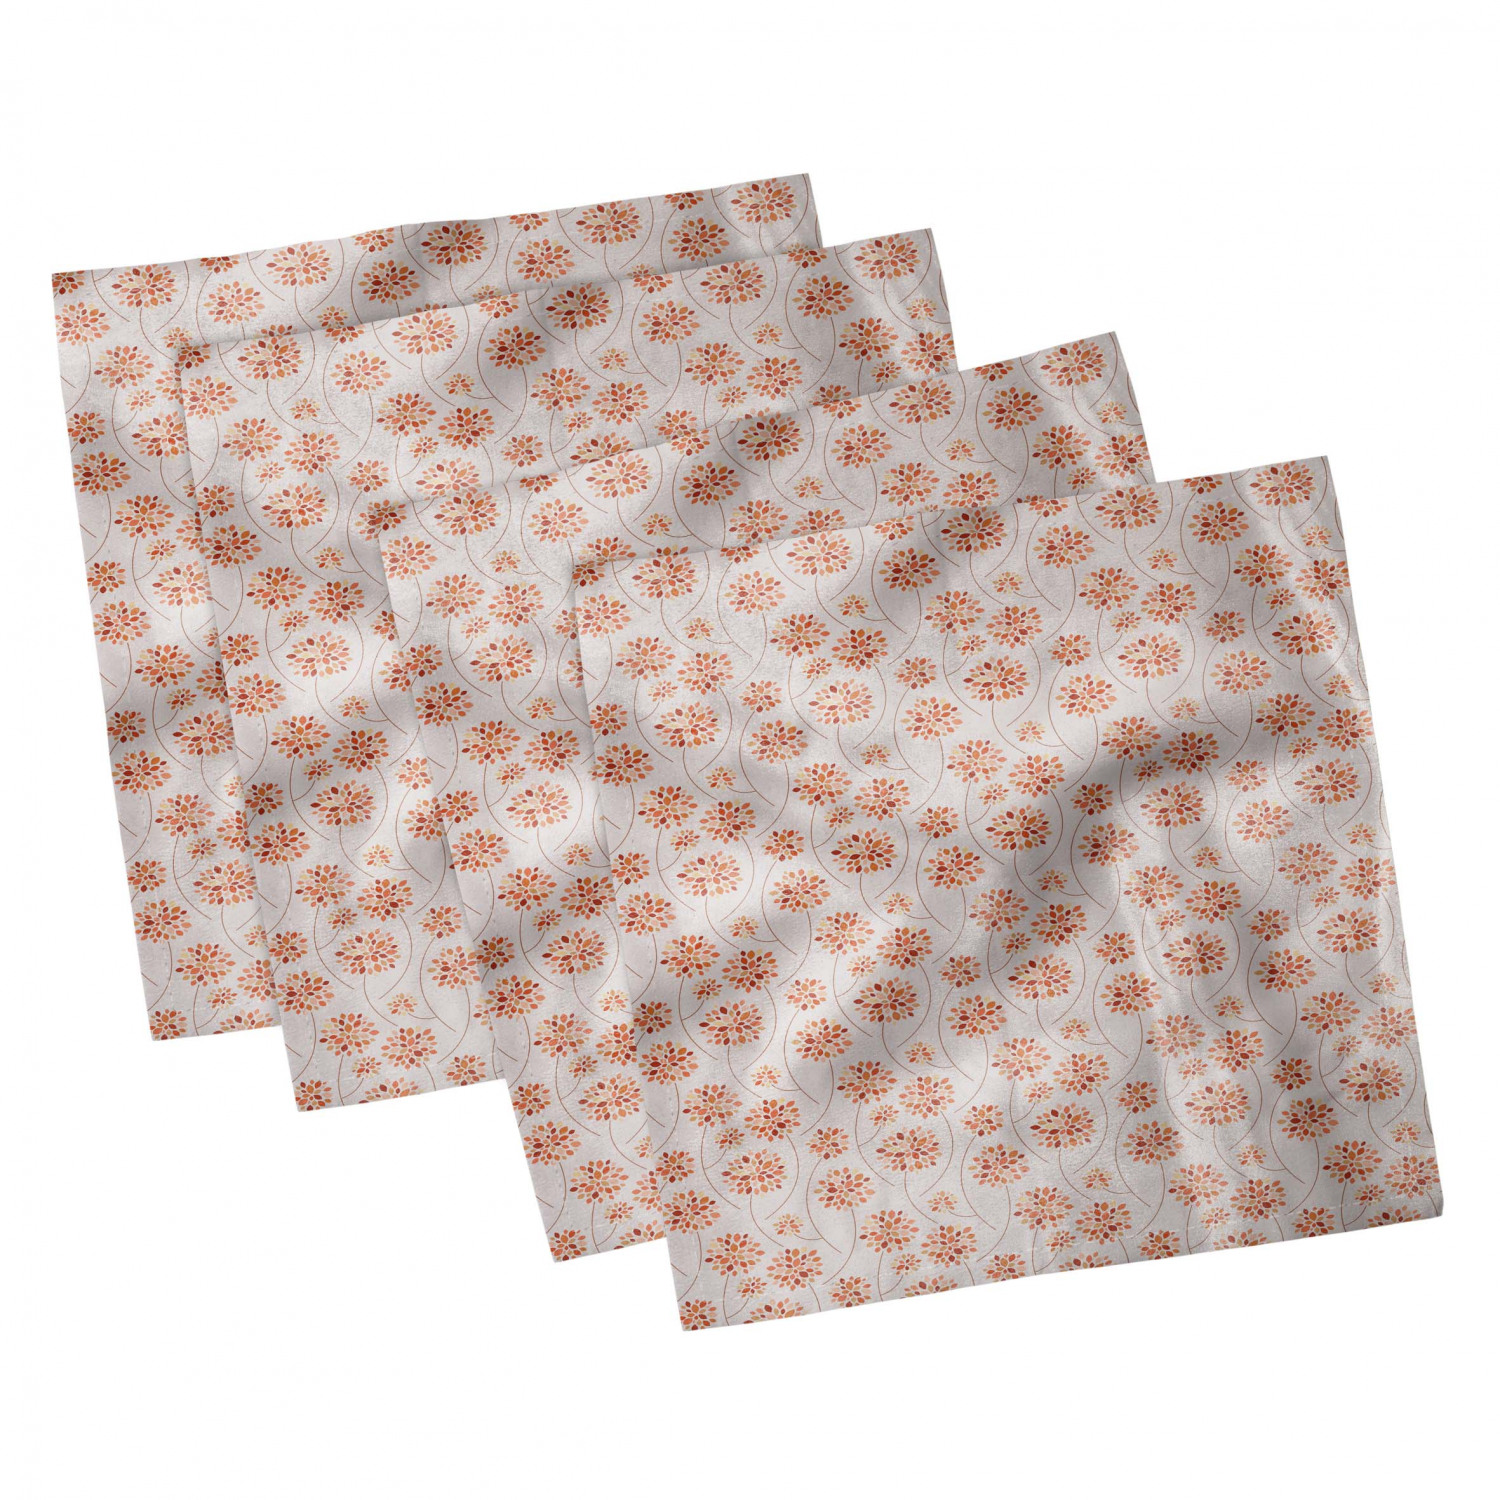 thumbnail 7 - Ambesonne Autumn Fall Decorative Satin Napkins Set of 4 Party Dinner Fabric